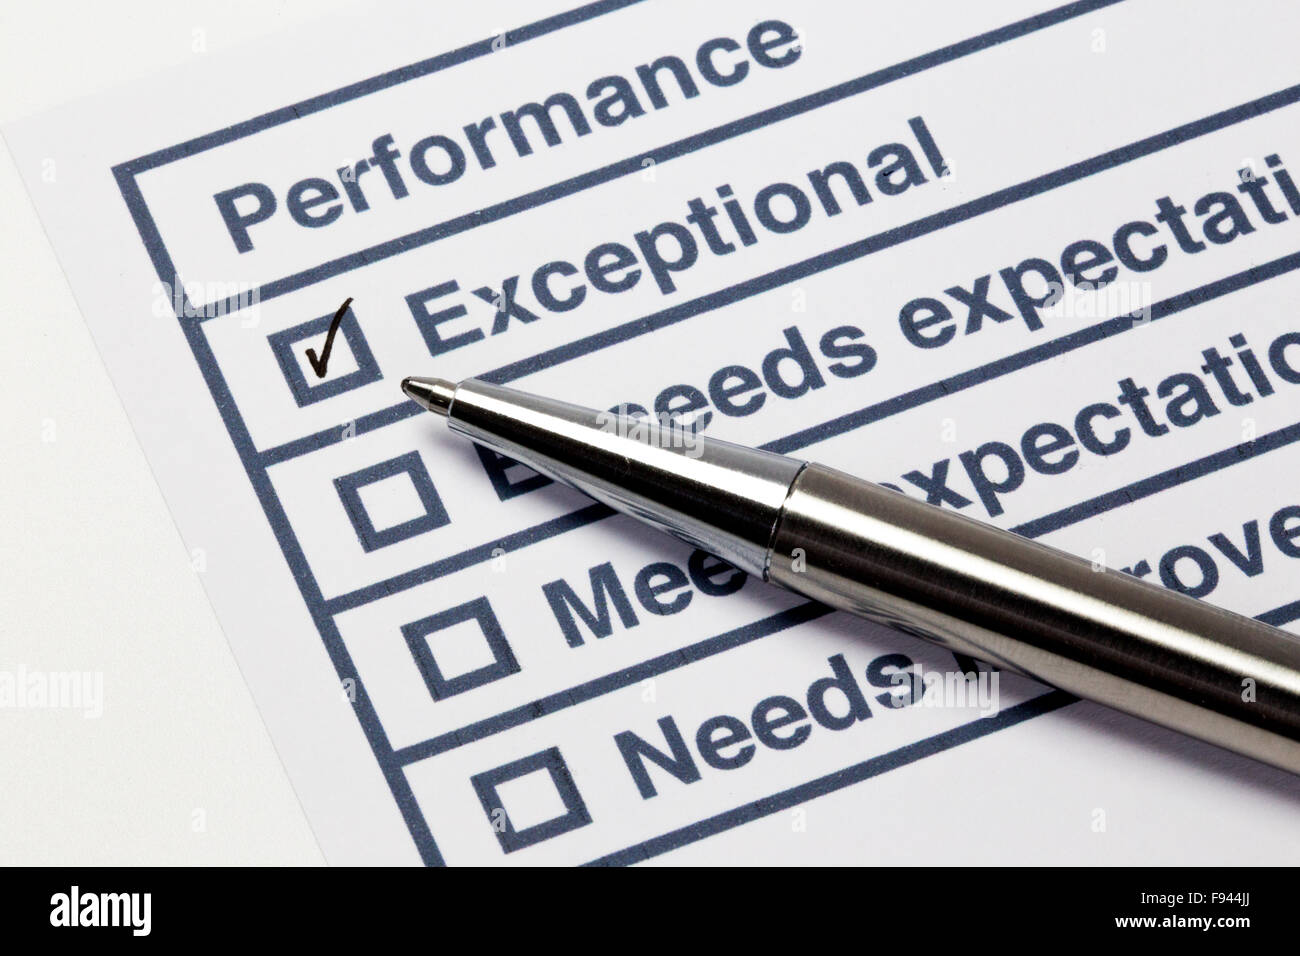 Performance evaluation paper with pen and tick marks - Stock Image